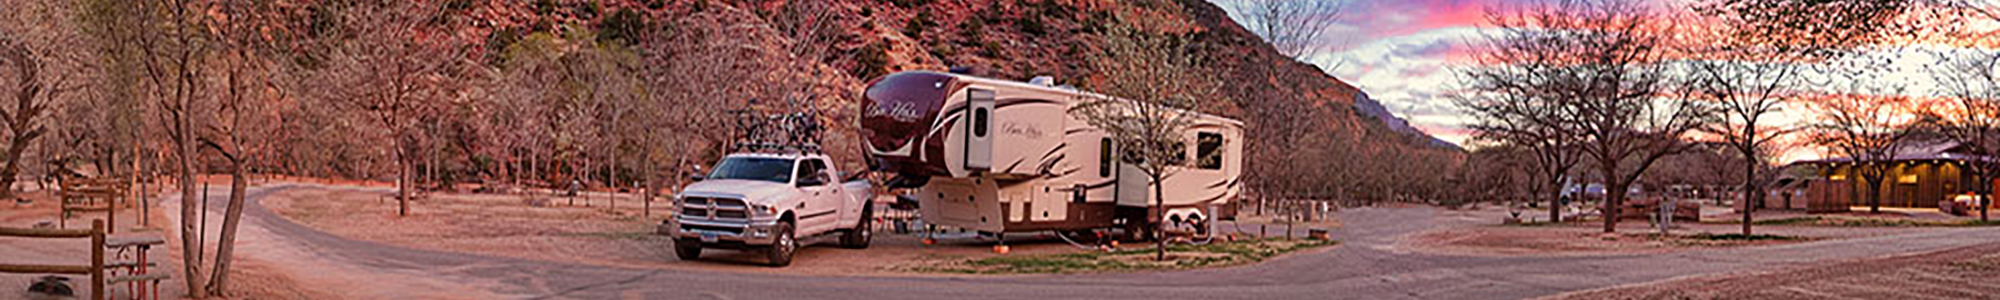 RV Academy Matching Trucks to Trailers